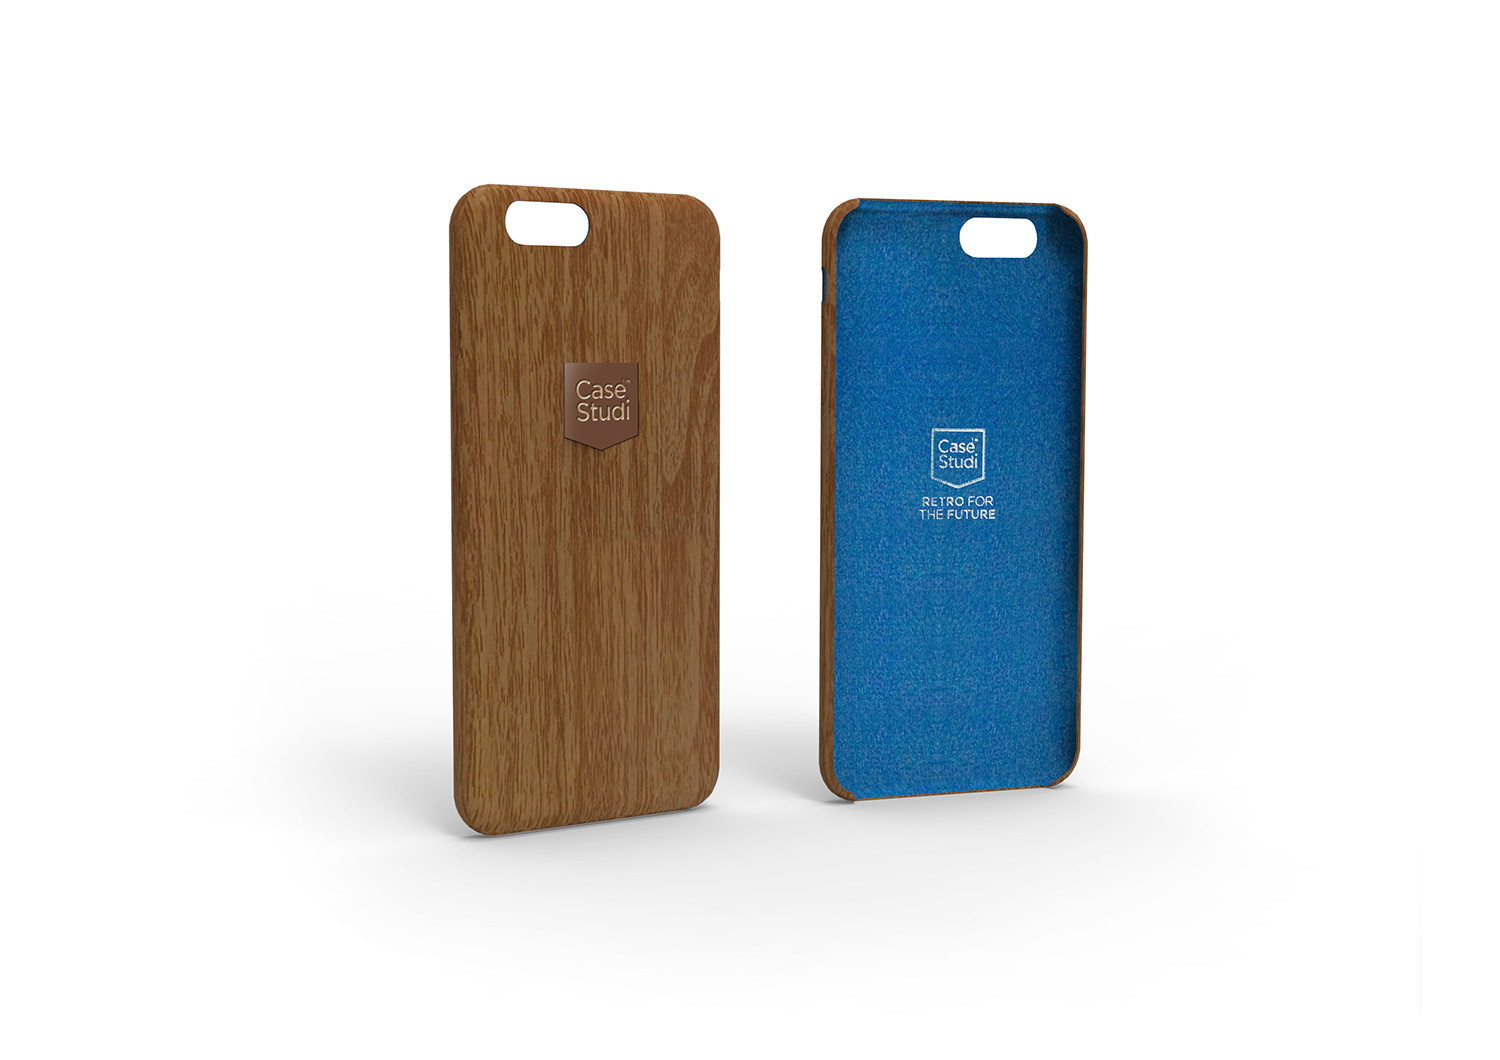 UltraSlim iPhone 6 / 6s case - Wood